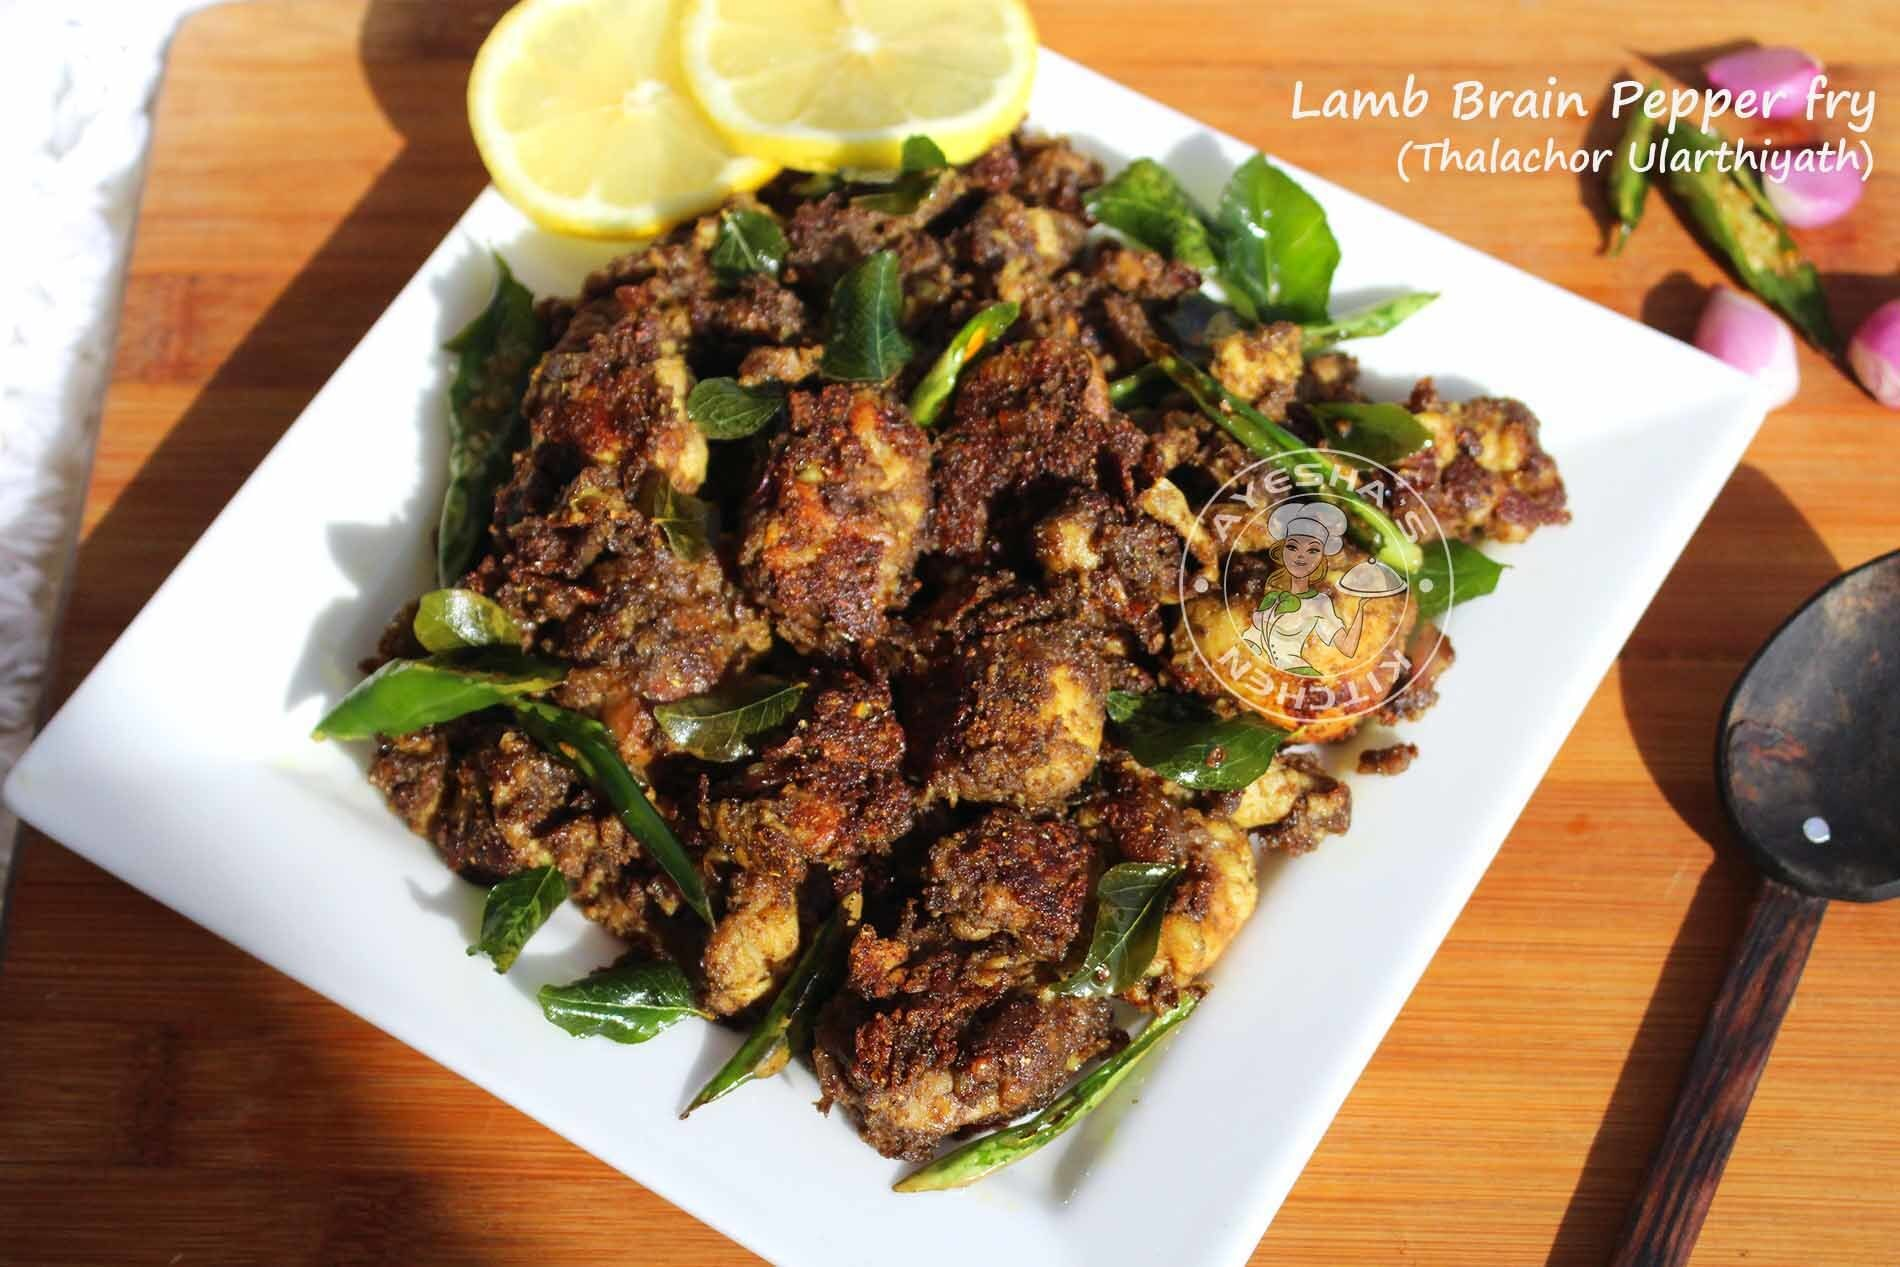 LAMB RECIPES - LAMB BRAIN PEPPER FRY